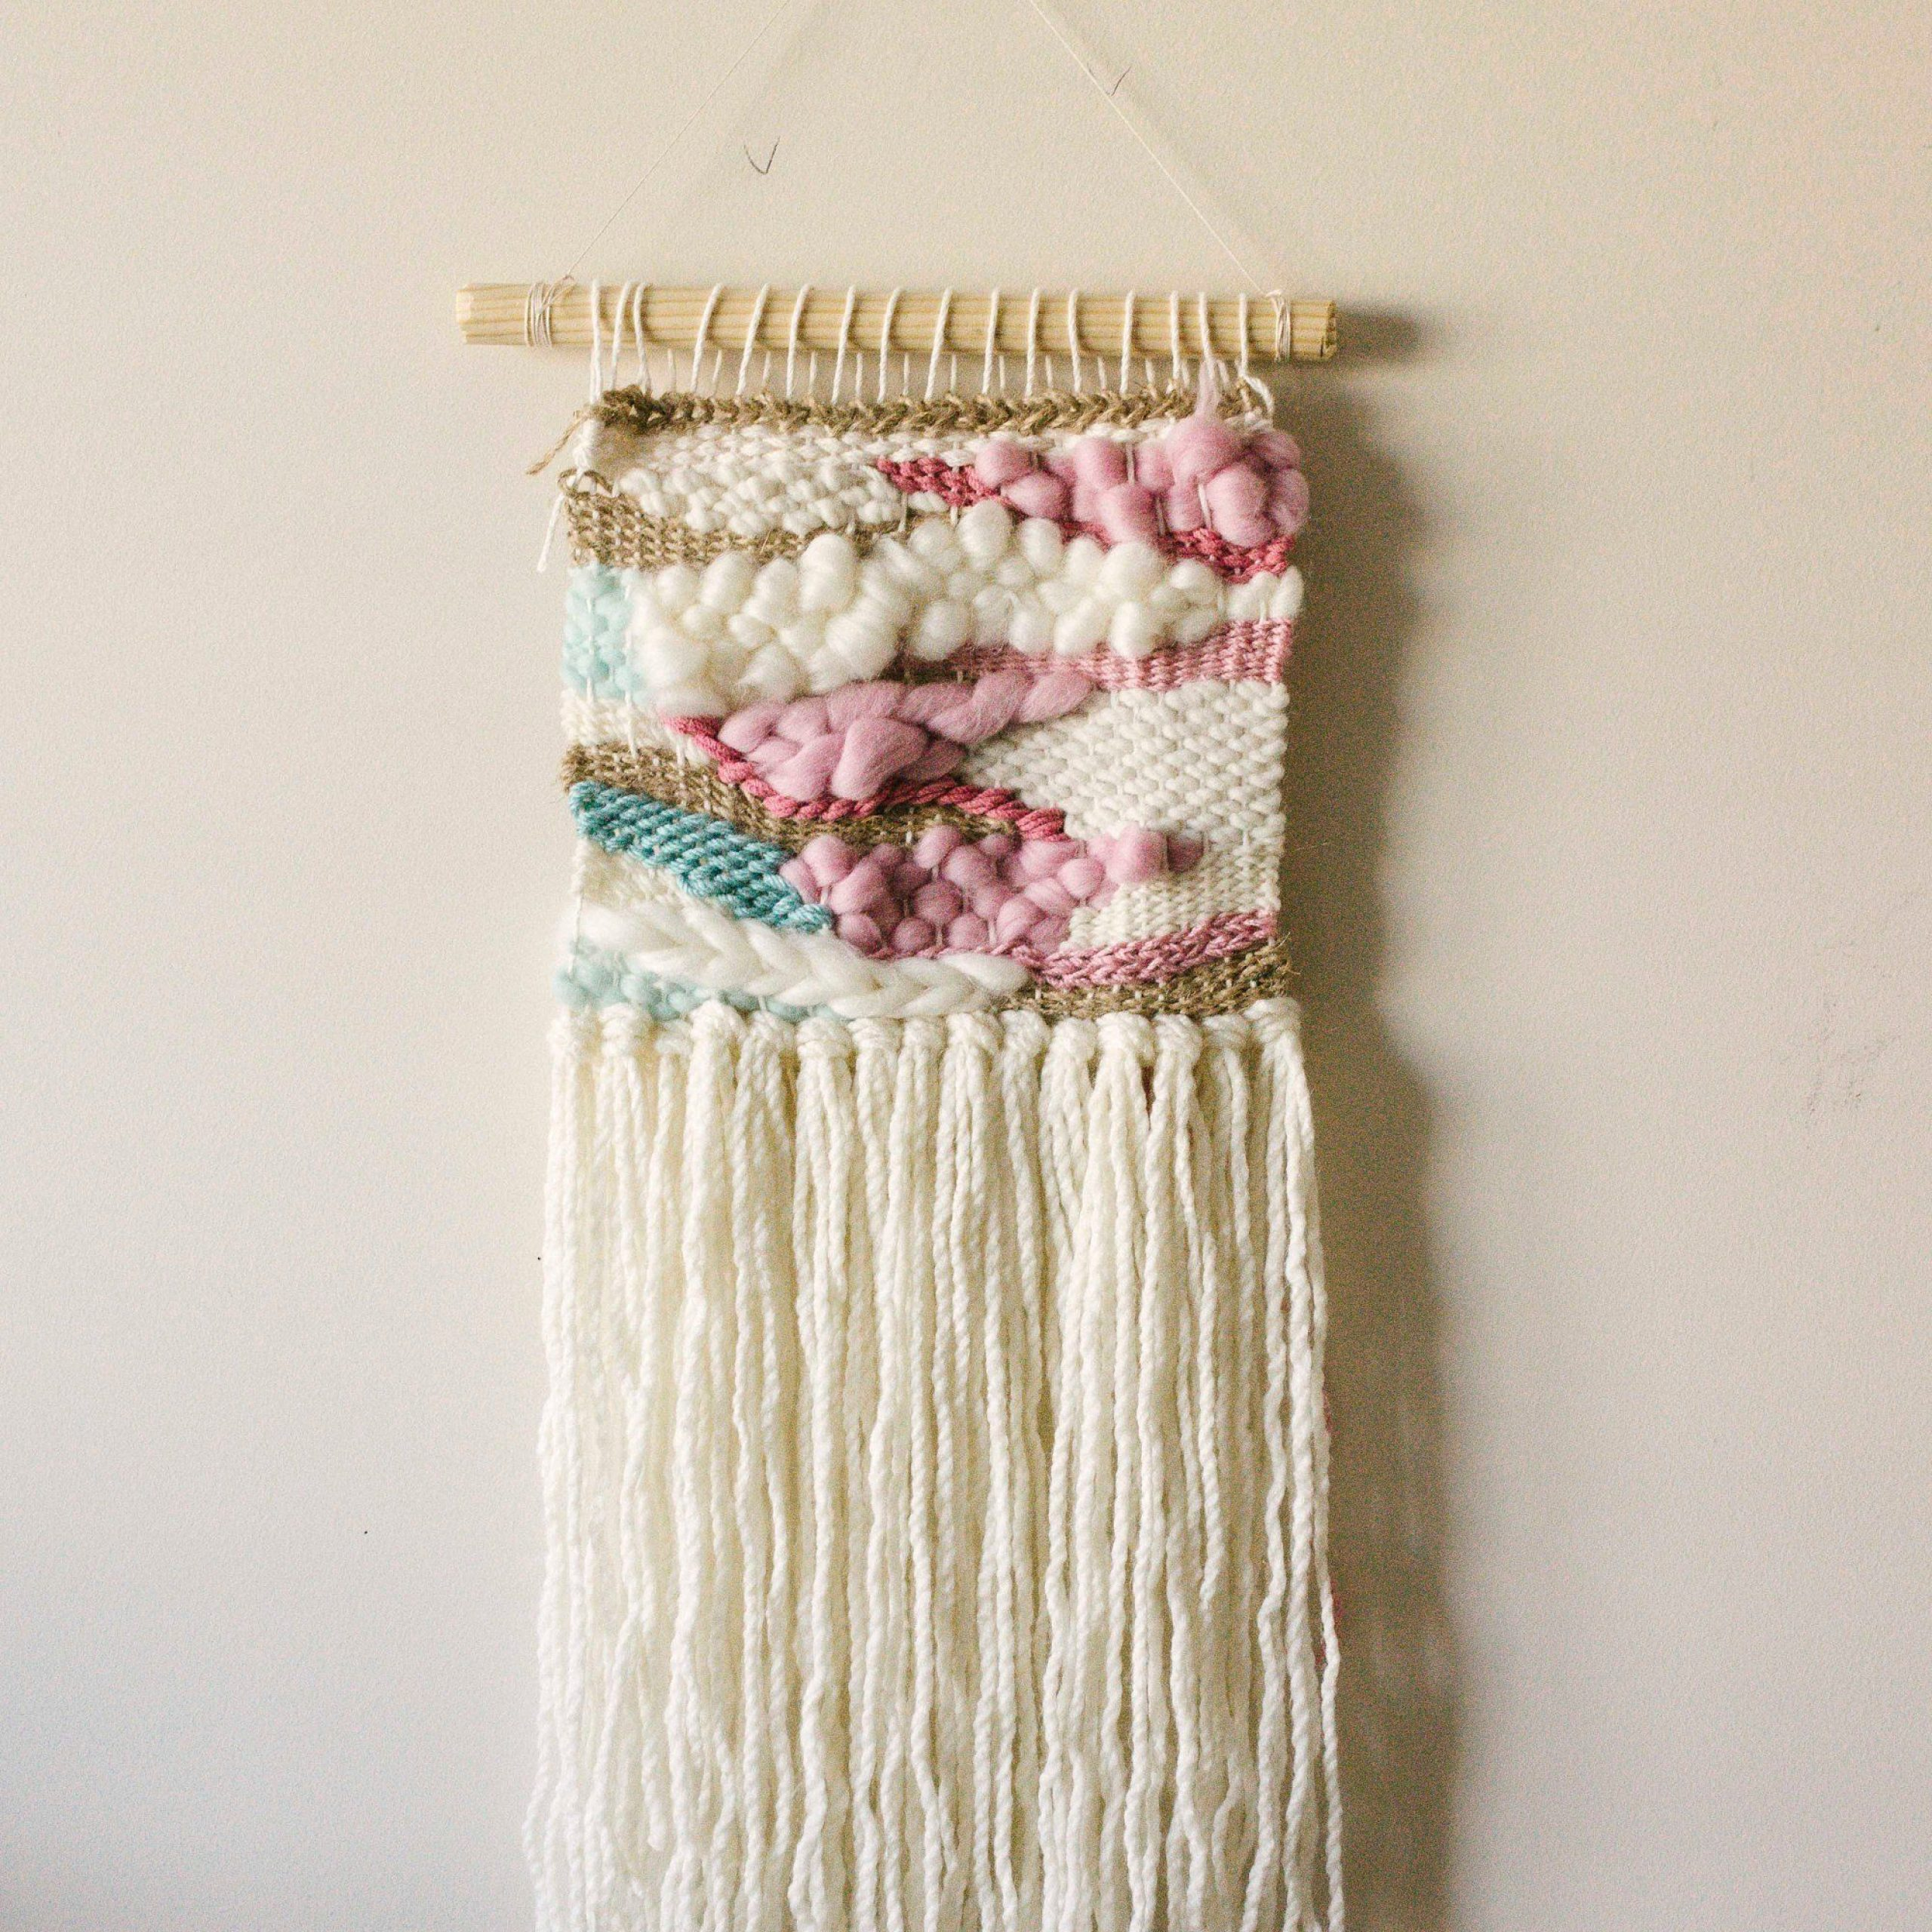 Cherry Blossom Woven Wall Hanging Pink Woven Tapestry Boho Throughout Fashionable Blended Fabric Hello Beauty Full Wall Hangings (View 16 of 20)